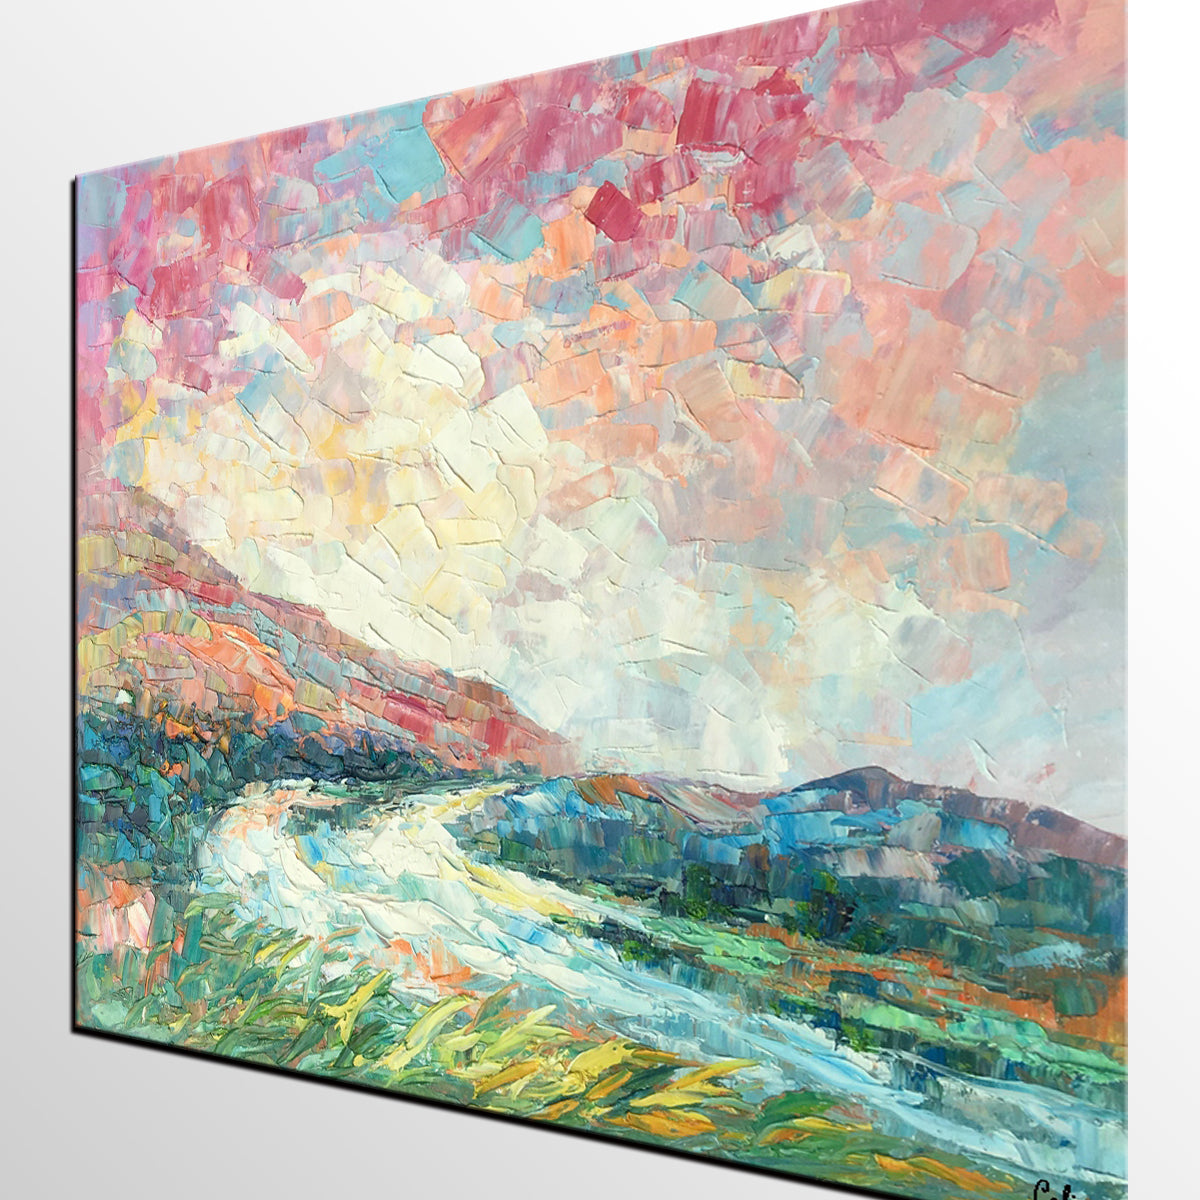 Abstract Painting, Canvas Painting, Painting for Sale, Original Oil Painting, Landscape Art